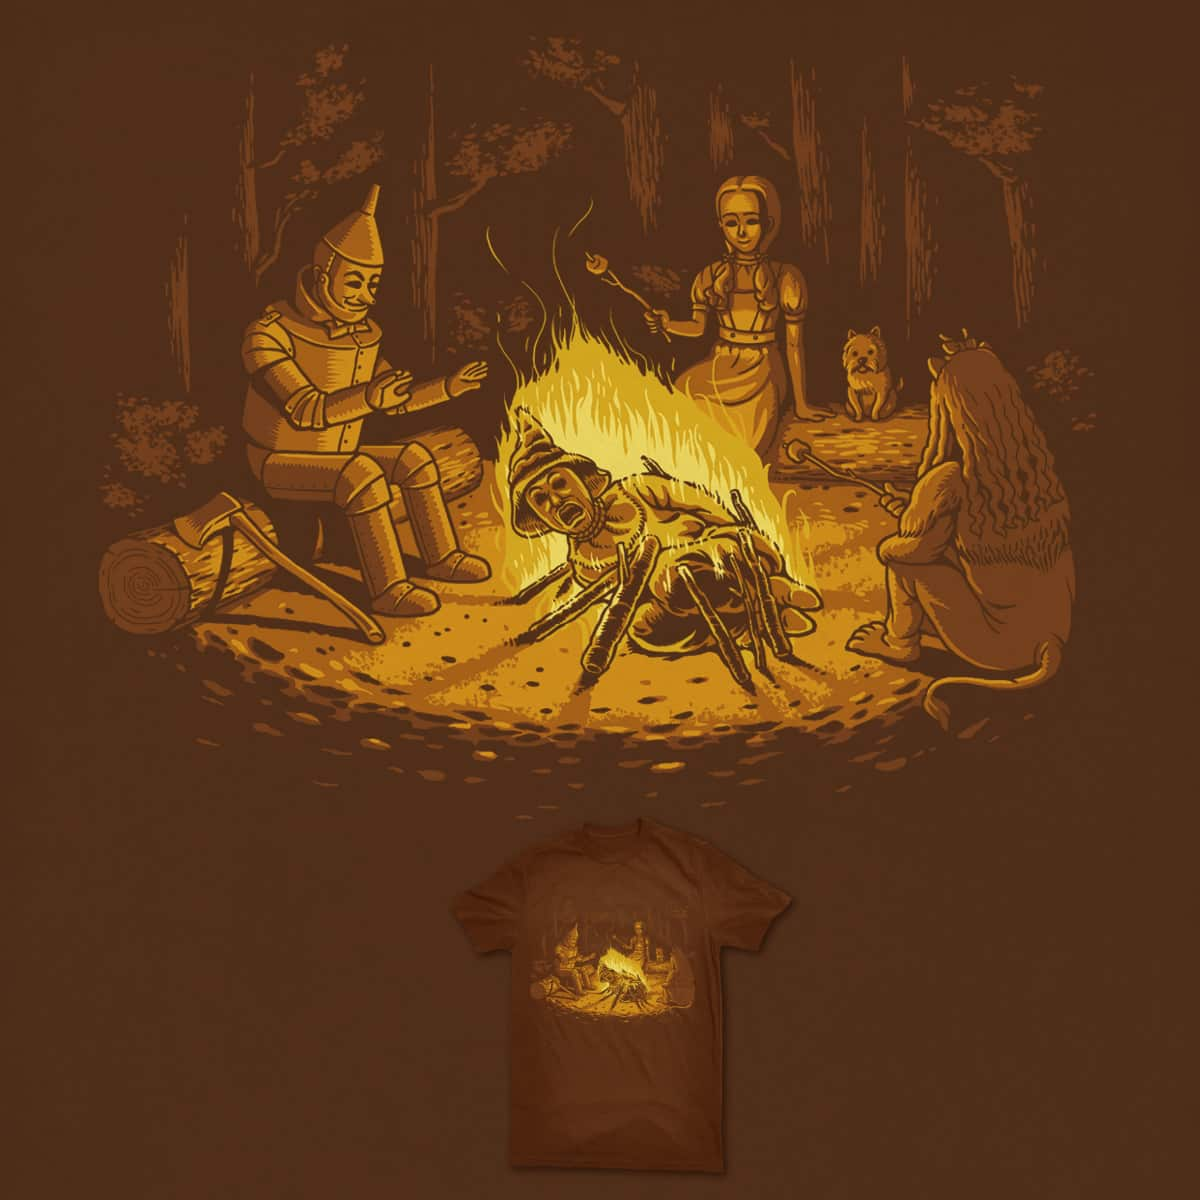 Campfire by ben chen on Threadless